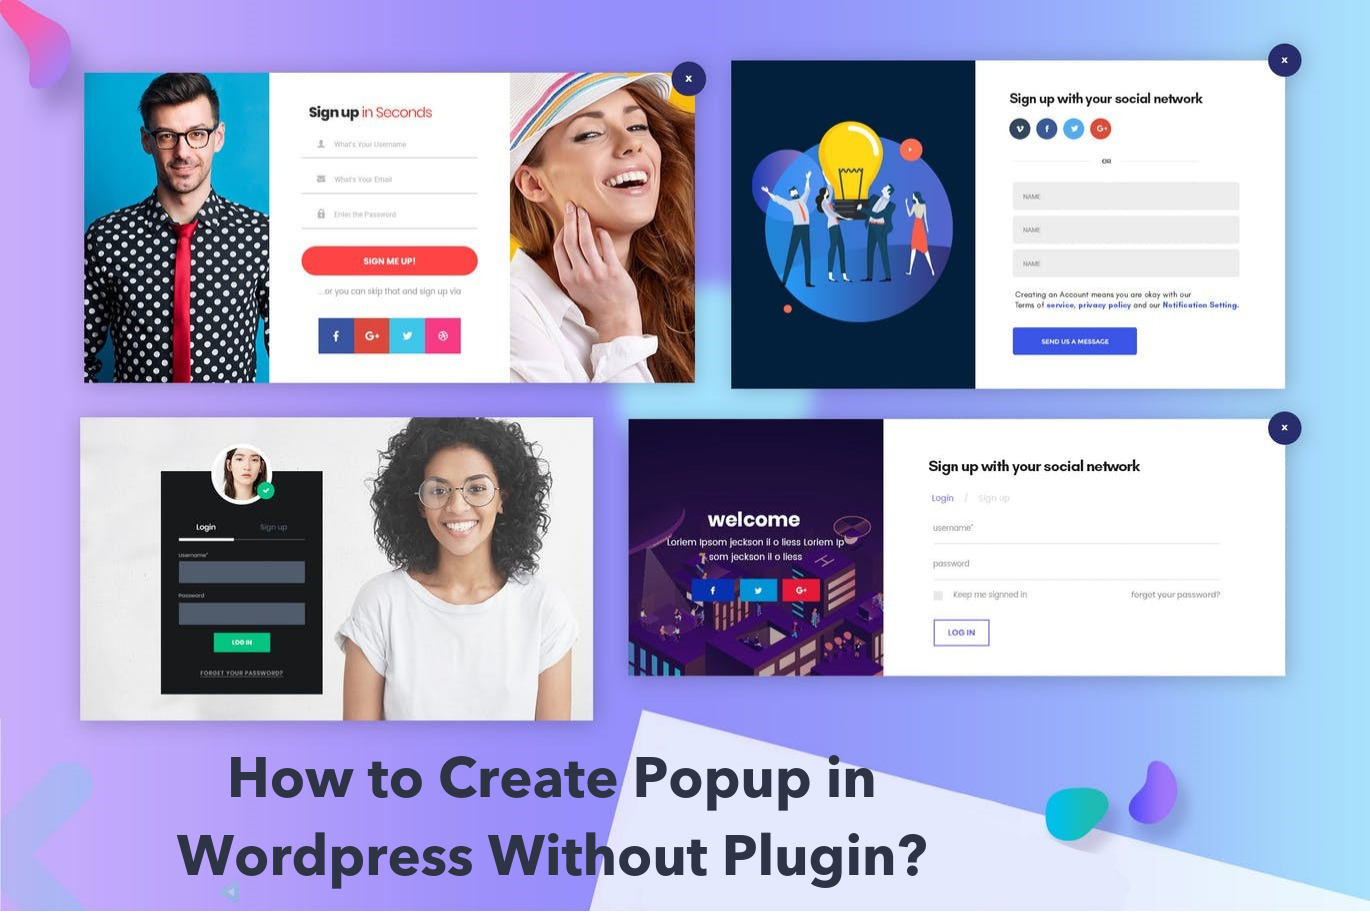 How to Create Popup in Wordpress Without Plugin? - Popupsmart